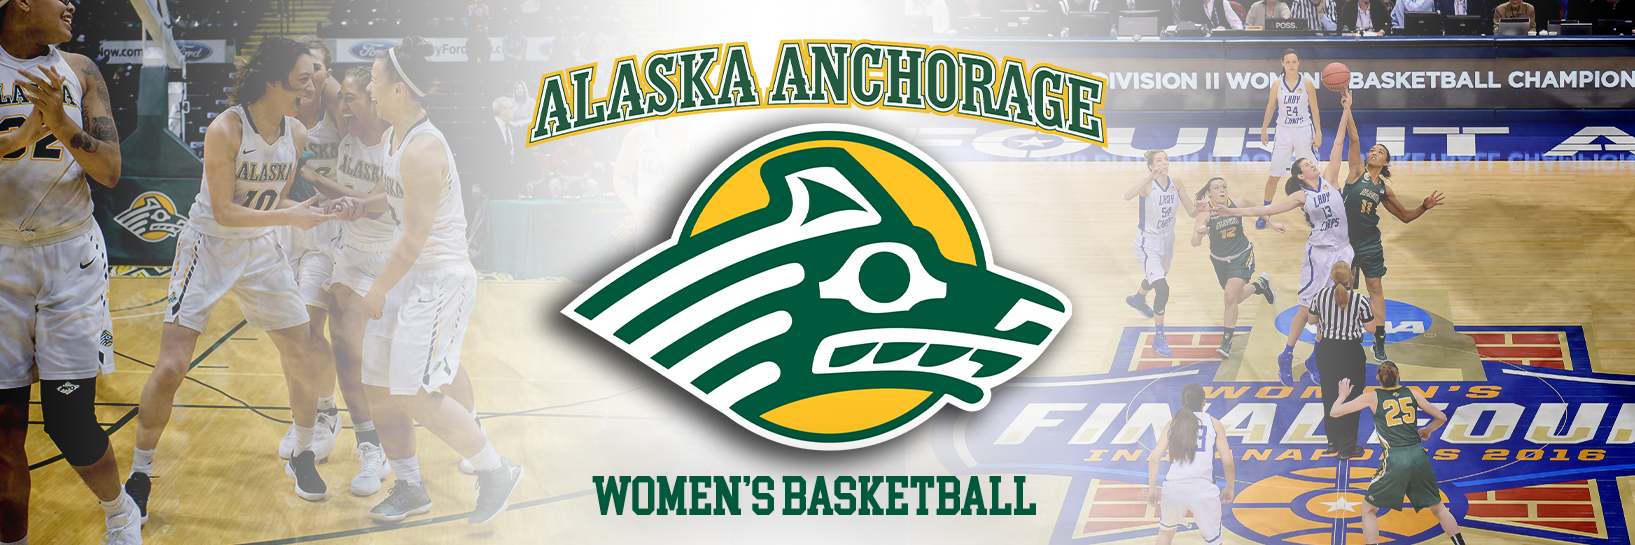 Alaska Anchorage Women's Basketball Launches Virtual Visit on GMTM